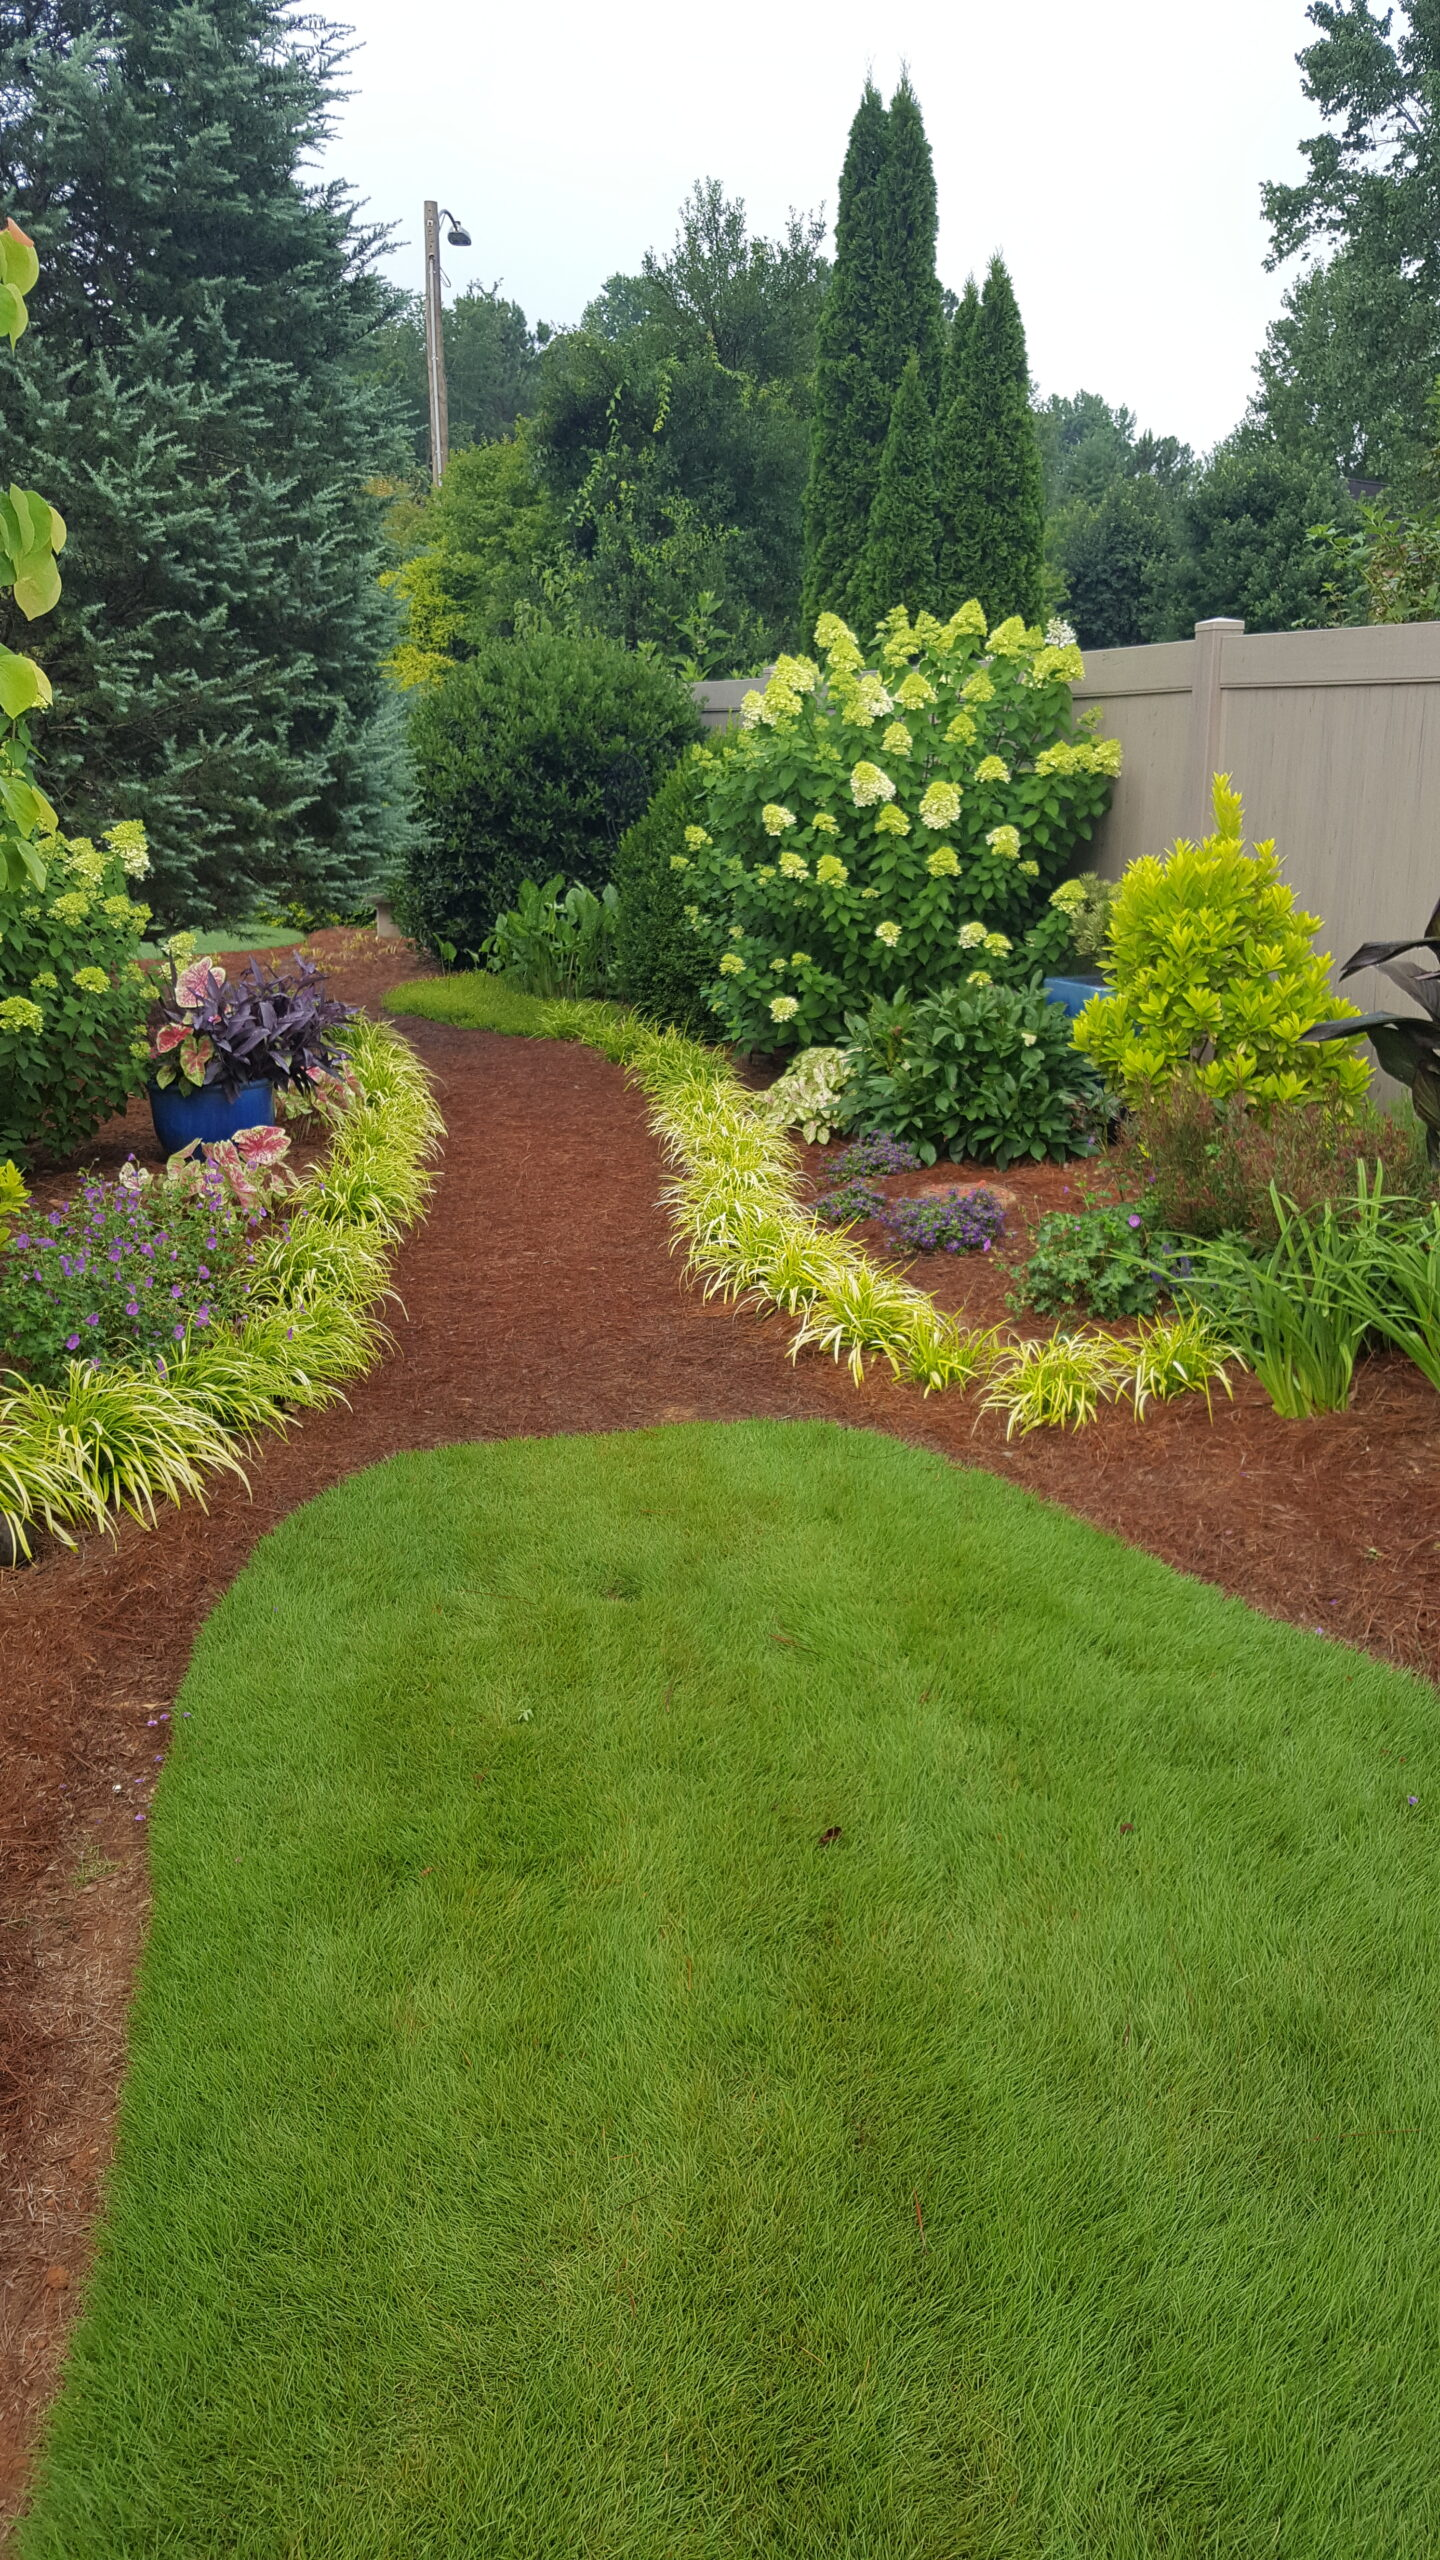 A garden path lined with yellow grasses